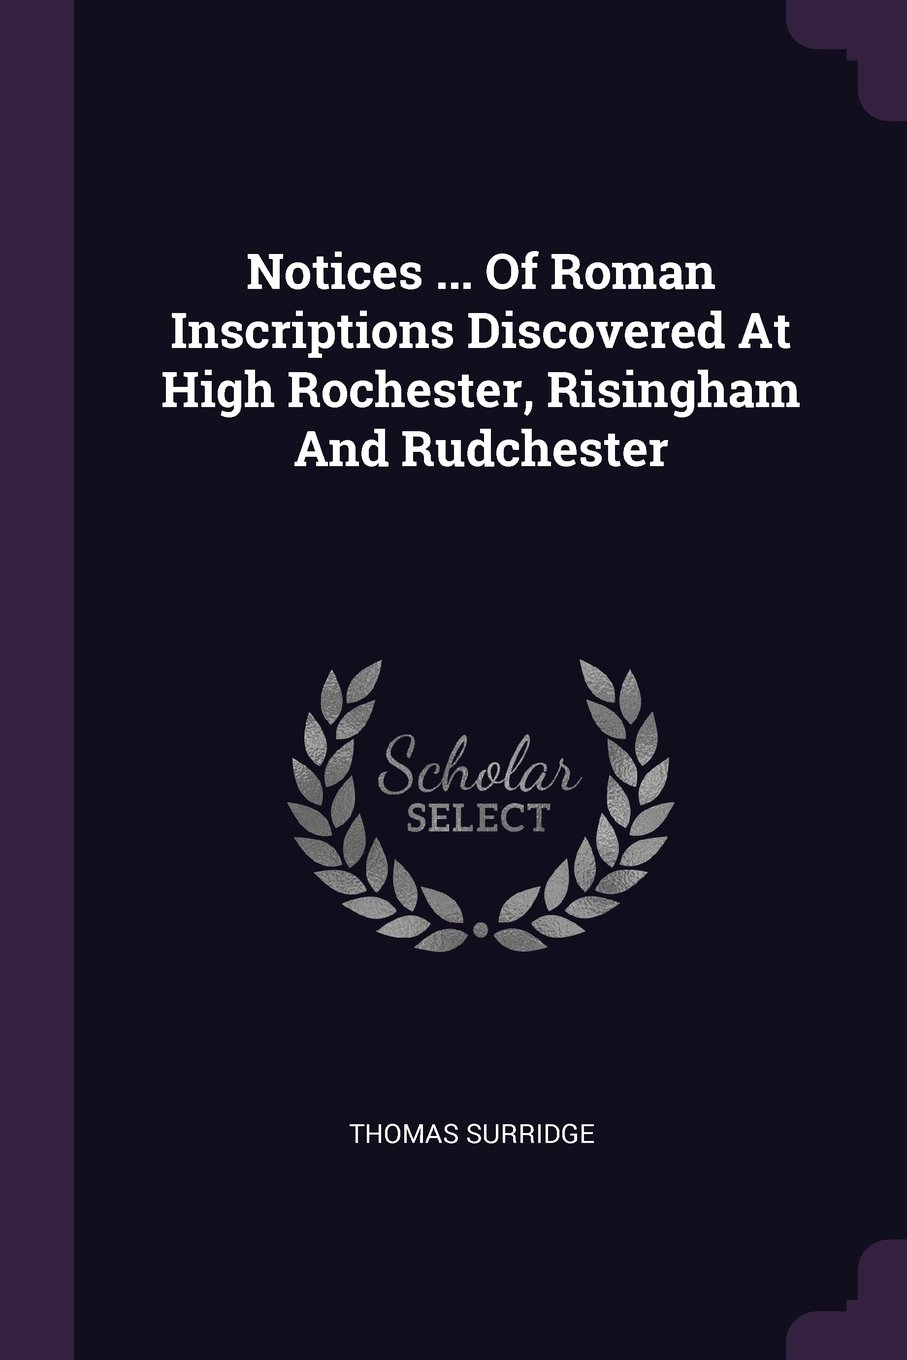 Notices ... Of Roman Inscriptions Discovered At High Rochester, Risingham And Rudchester PDF